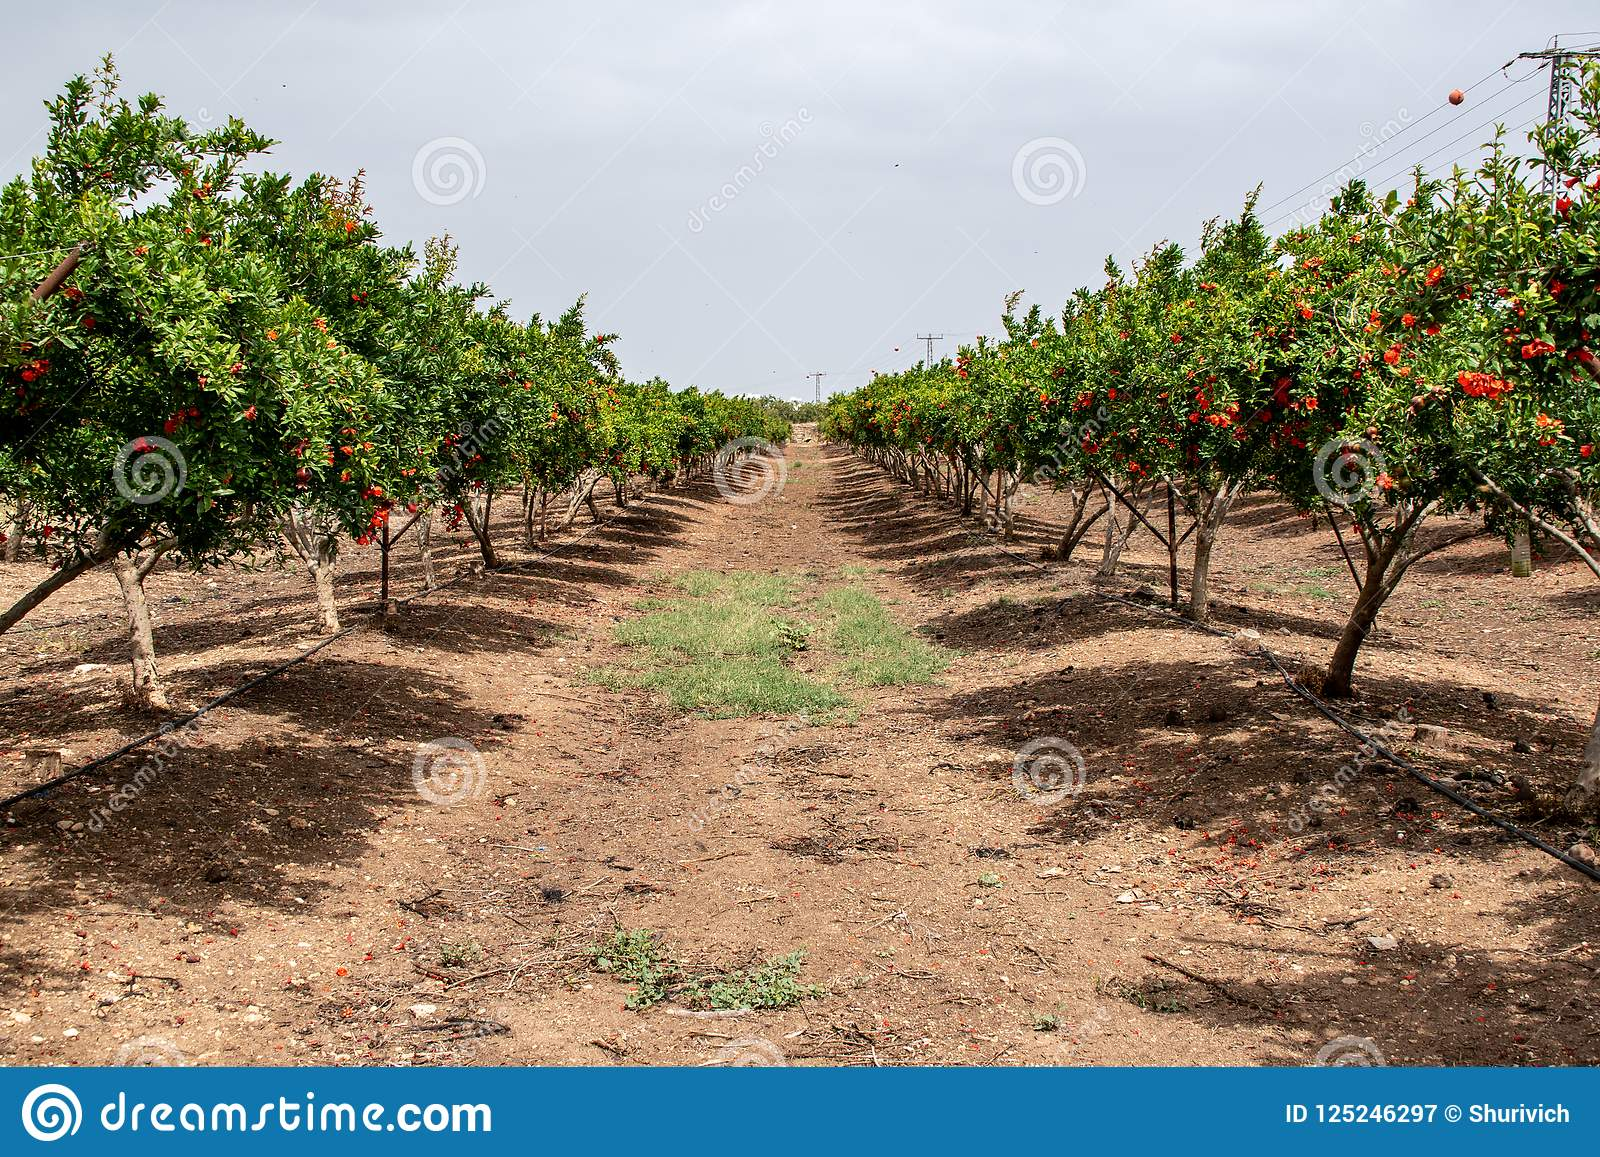 Israel pomegranates fields